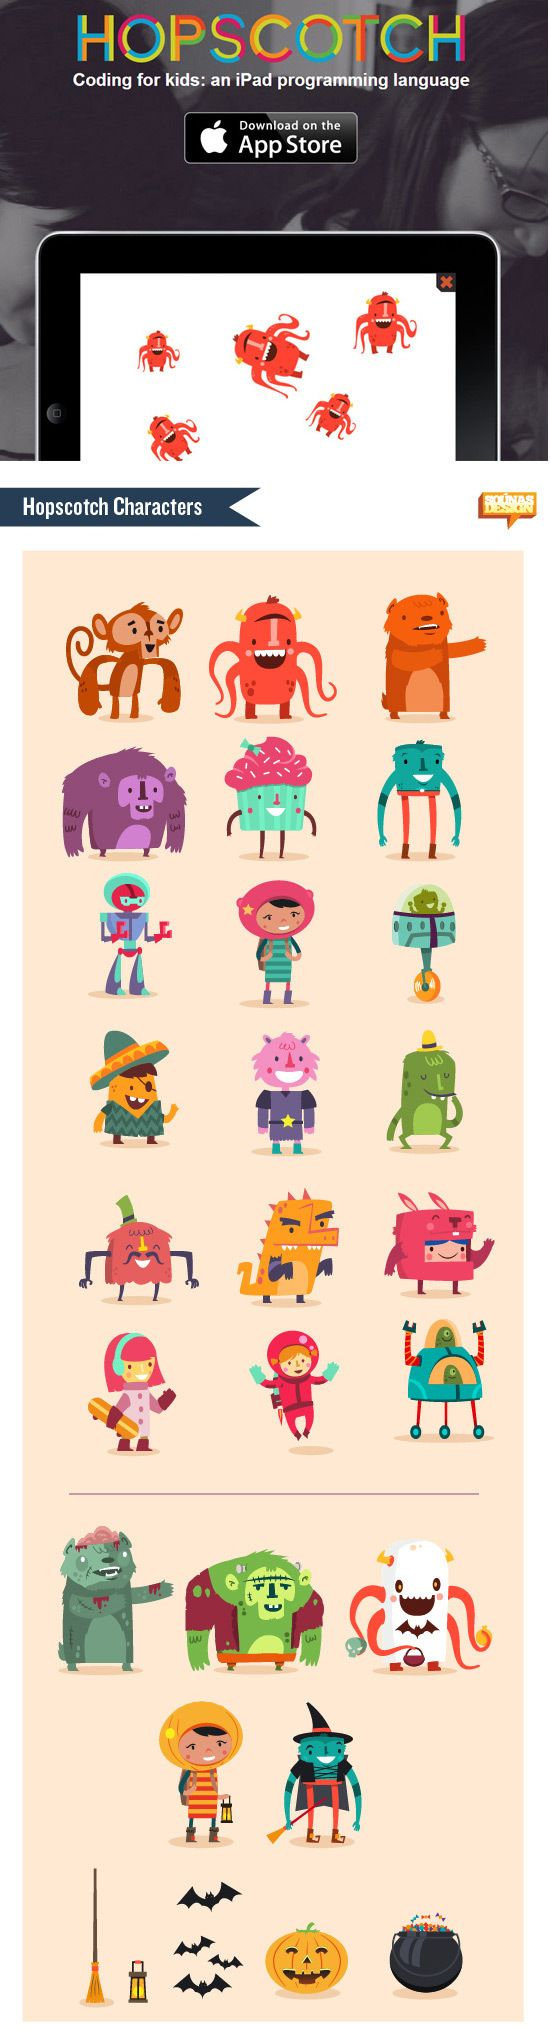 Hopscotch characters | Illustrator: Ilias Sounas